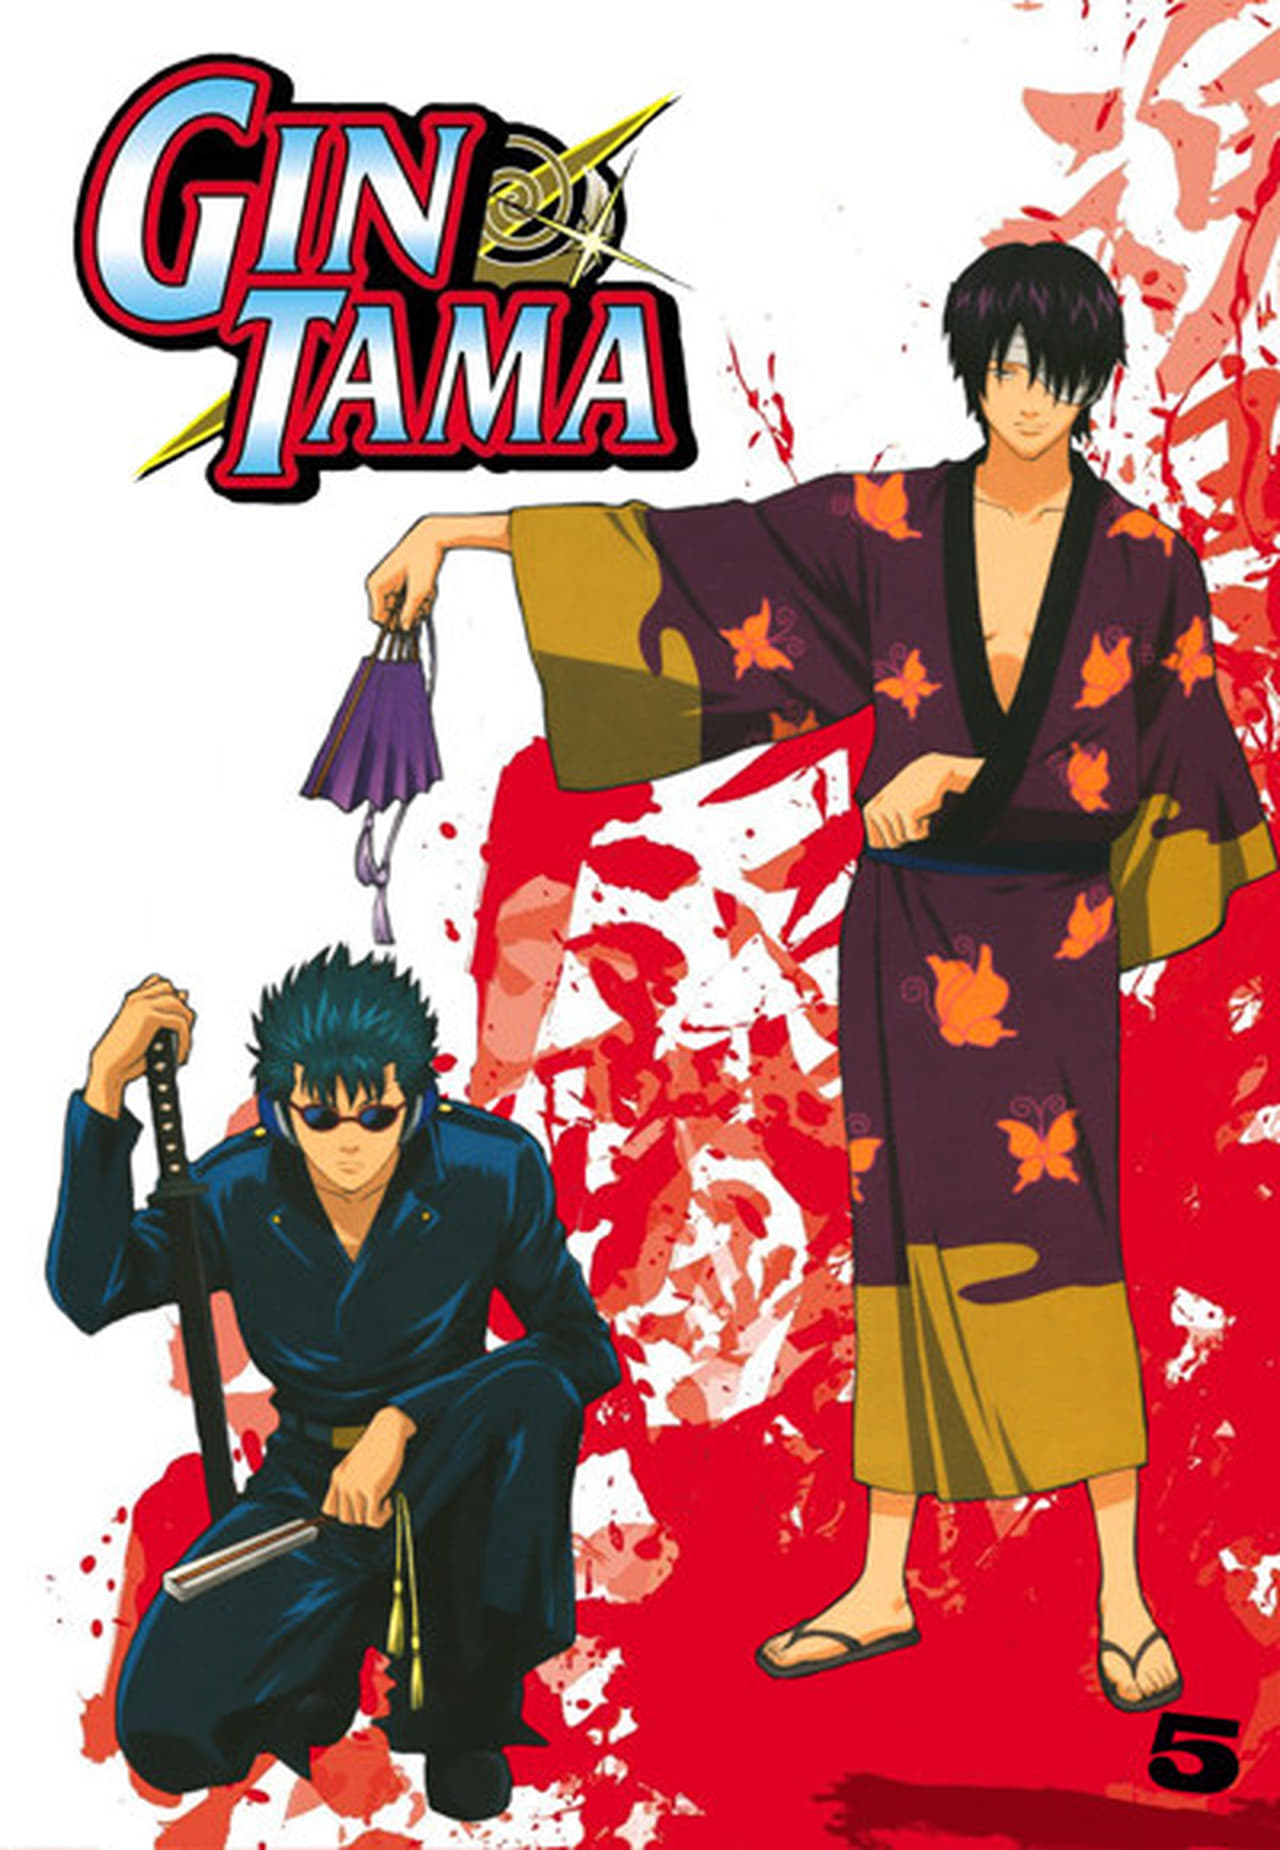 Putlocker Gintama Season 5 (2011)